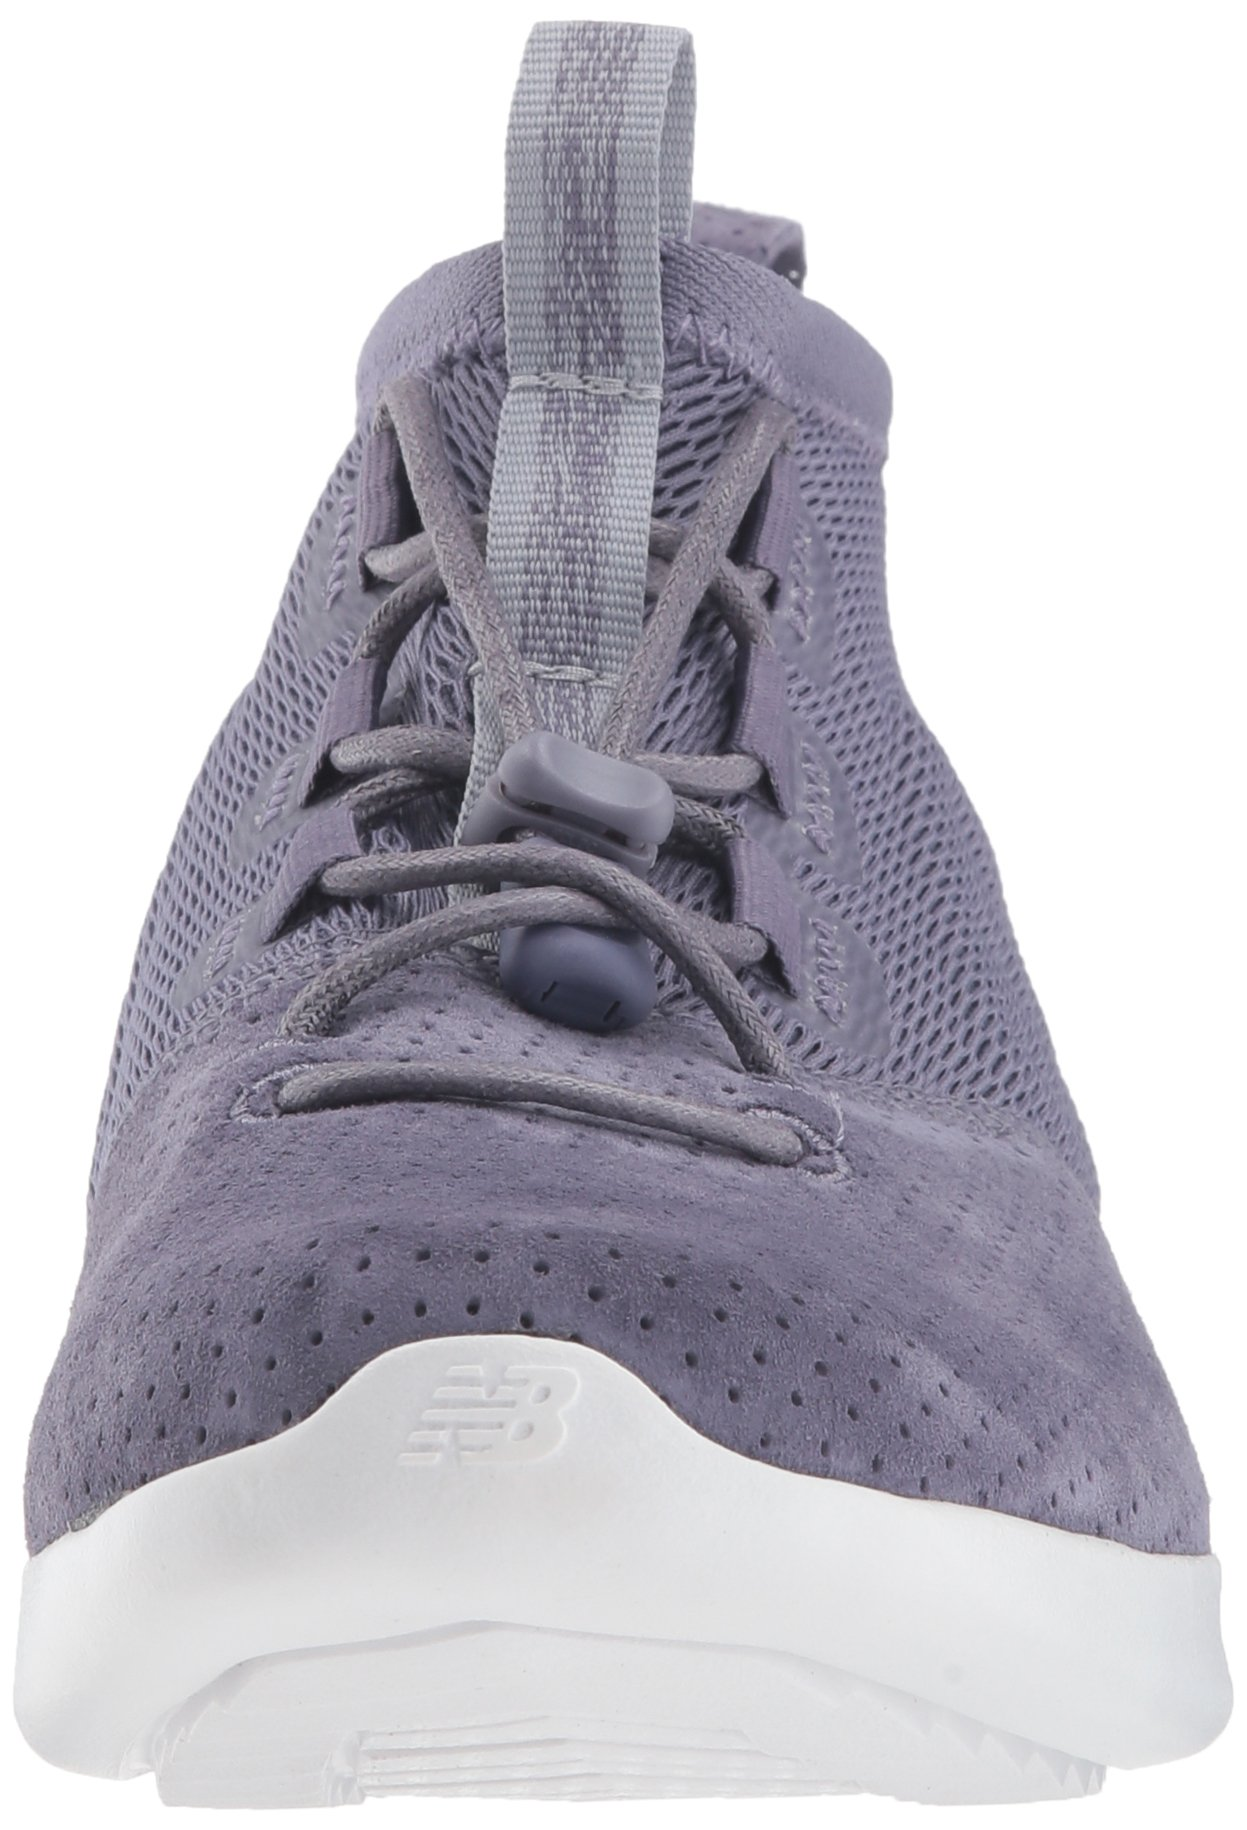 717mpsTBkoL - New Balance Women's Cypher Luxe Running Shoes